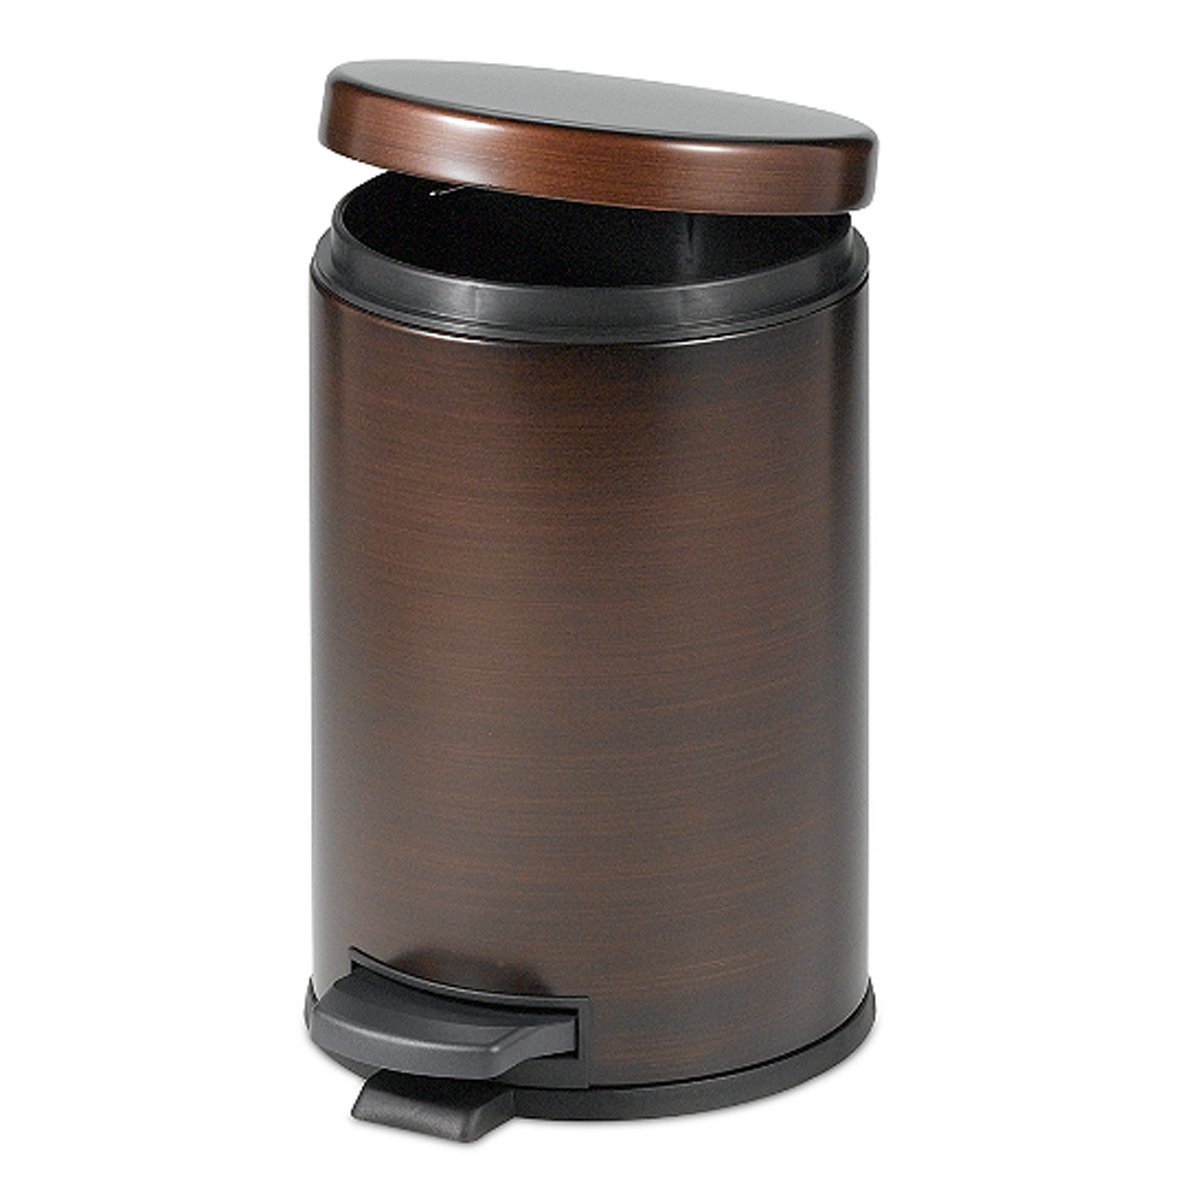 Small Bathroom Trash Cans With Lids Small Bathroom Trash Can With Lid Wicker Wastebasket With